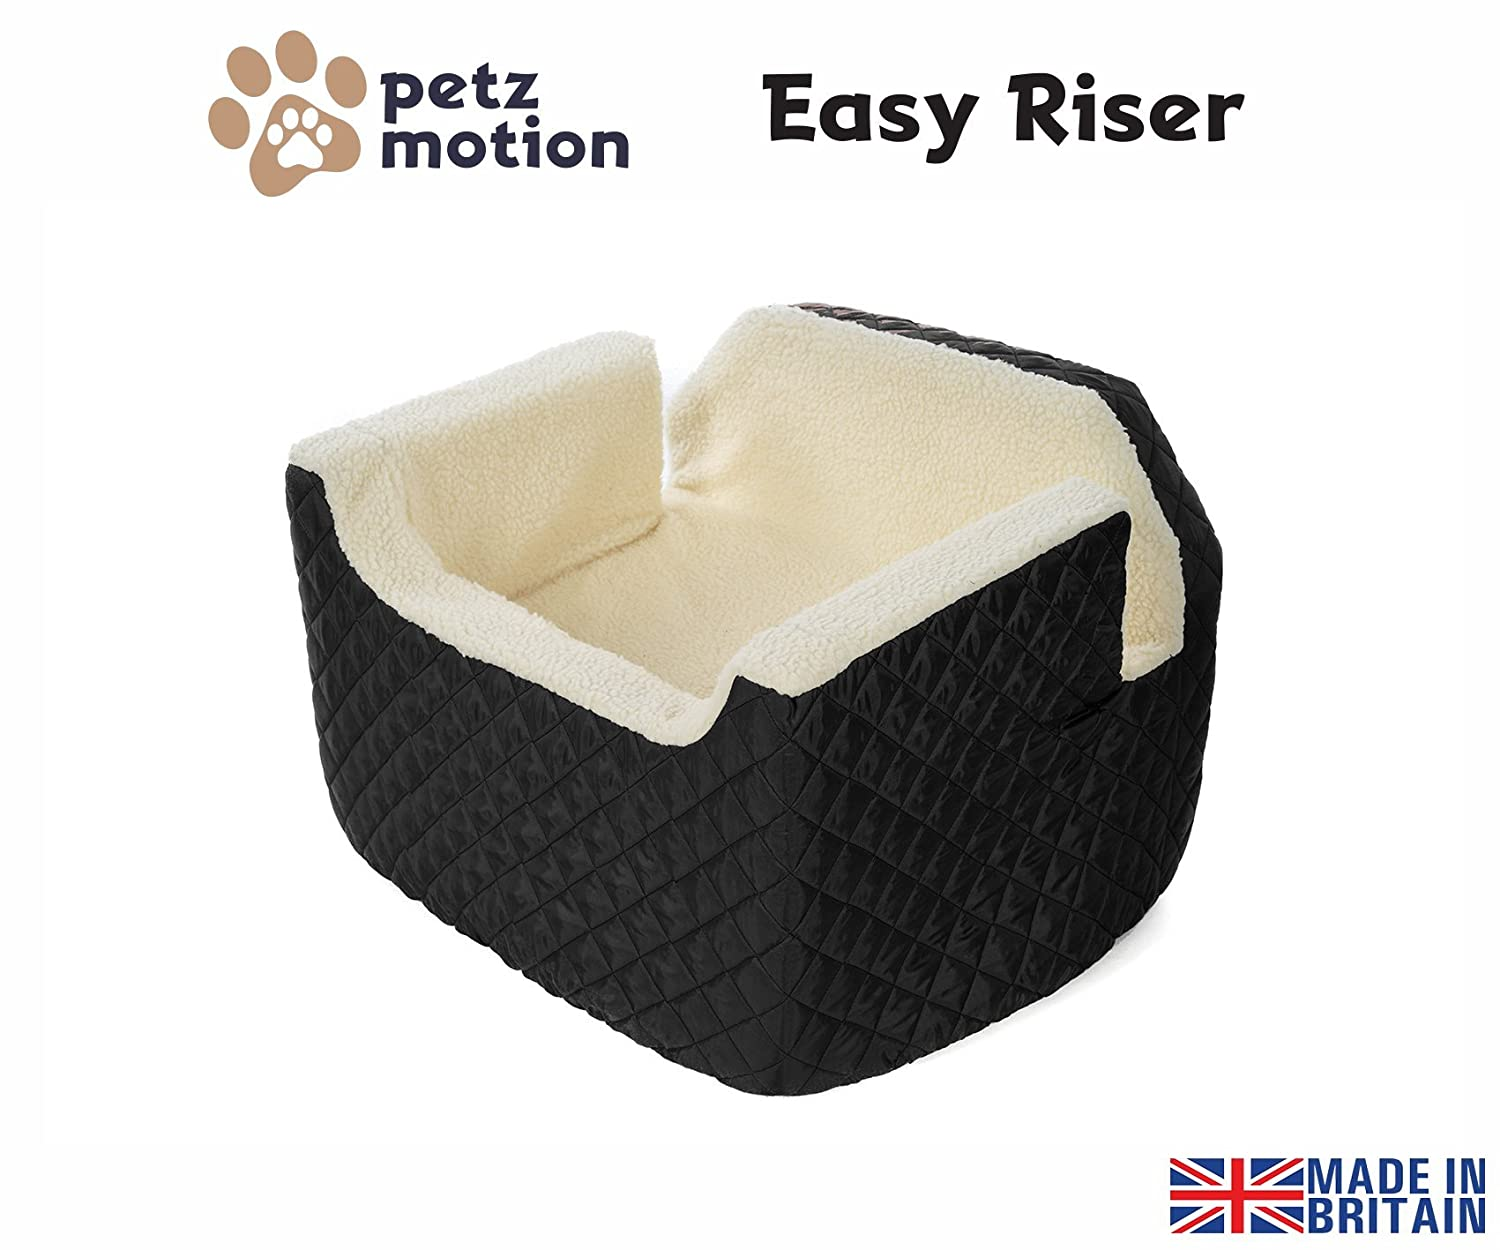 Petzmotion Easy Riser Pet//Dog Booster Safety Car Seat Medium, Black